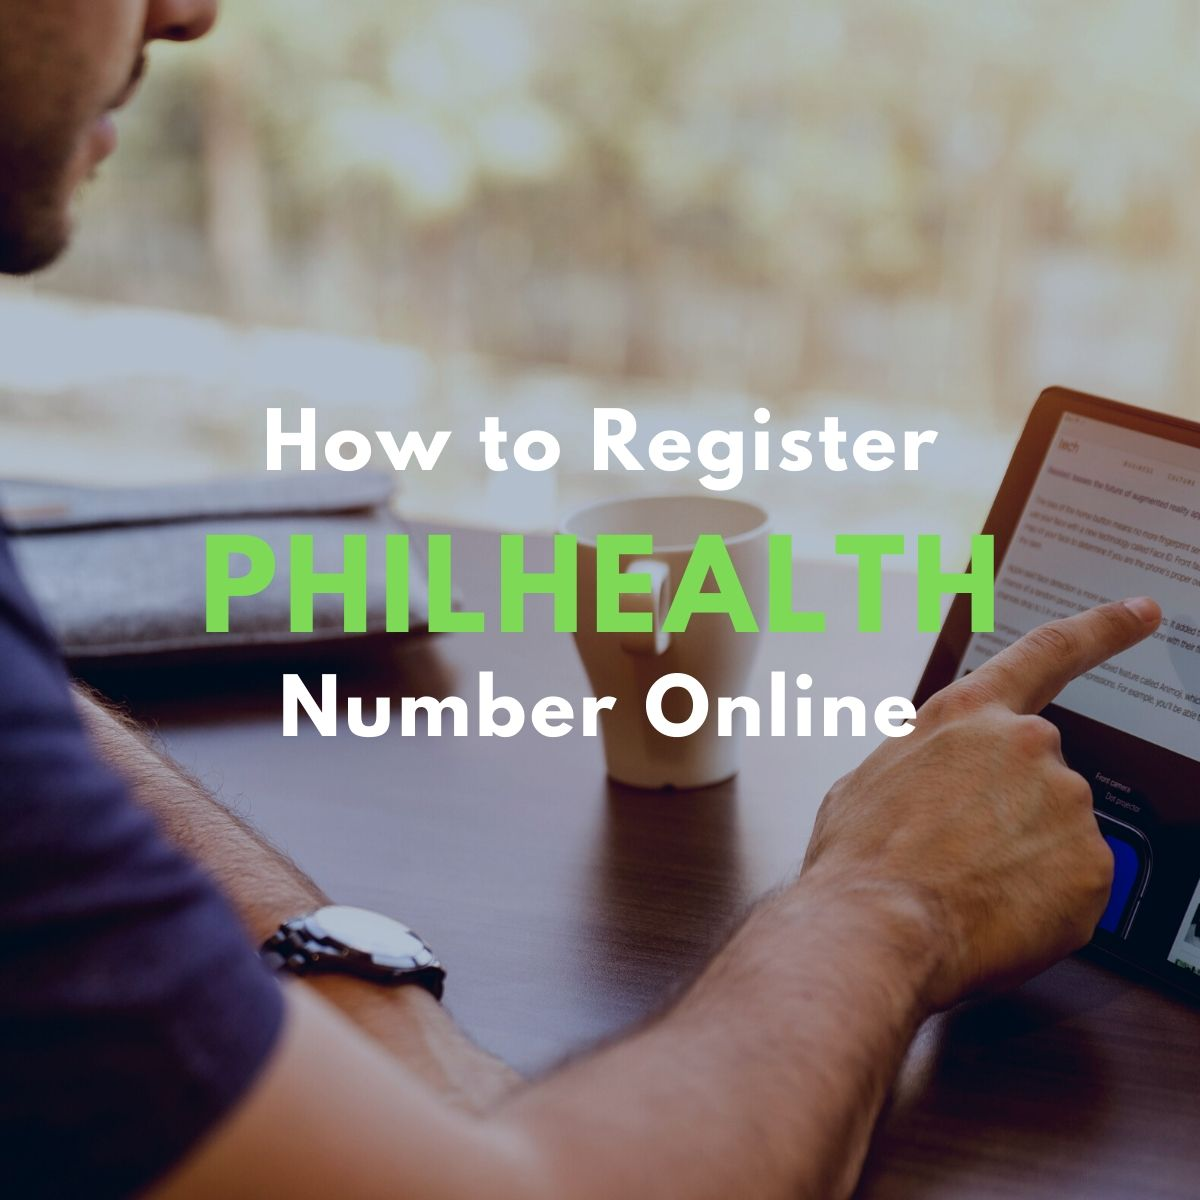 how to register philhealth number online